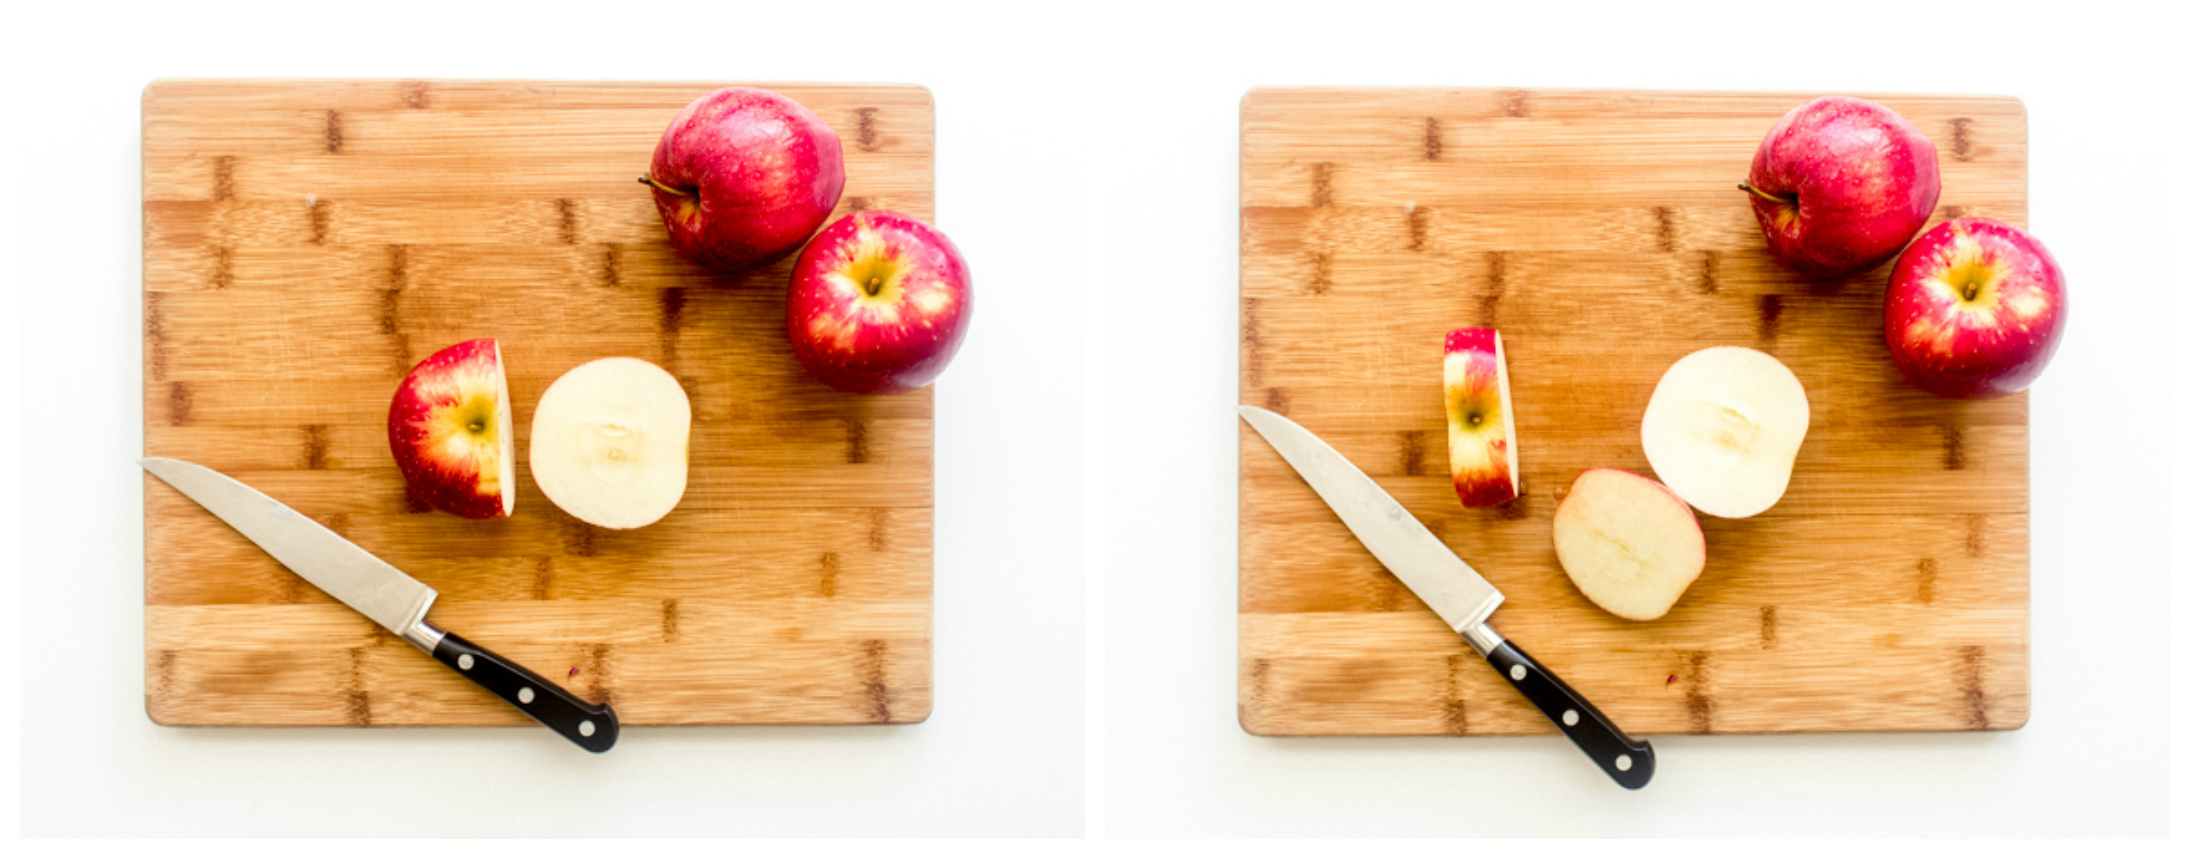 cut up apples on a board